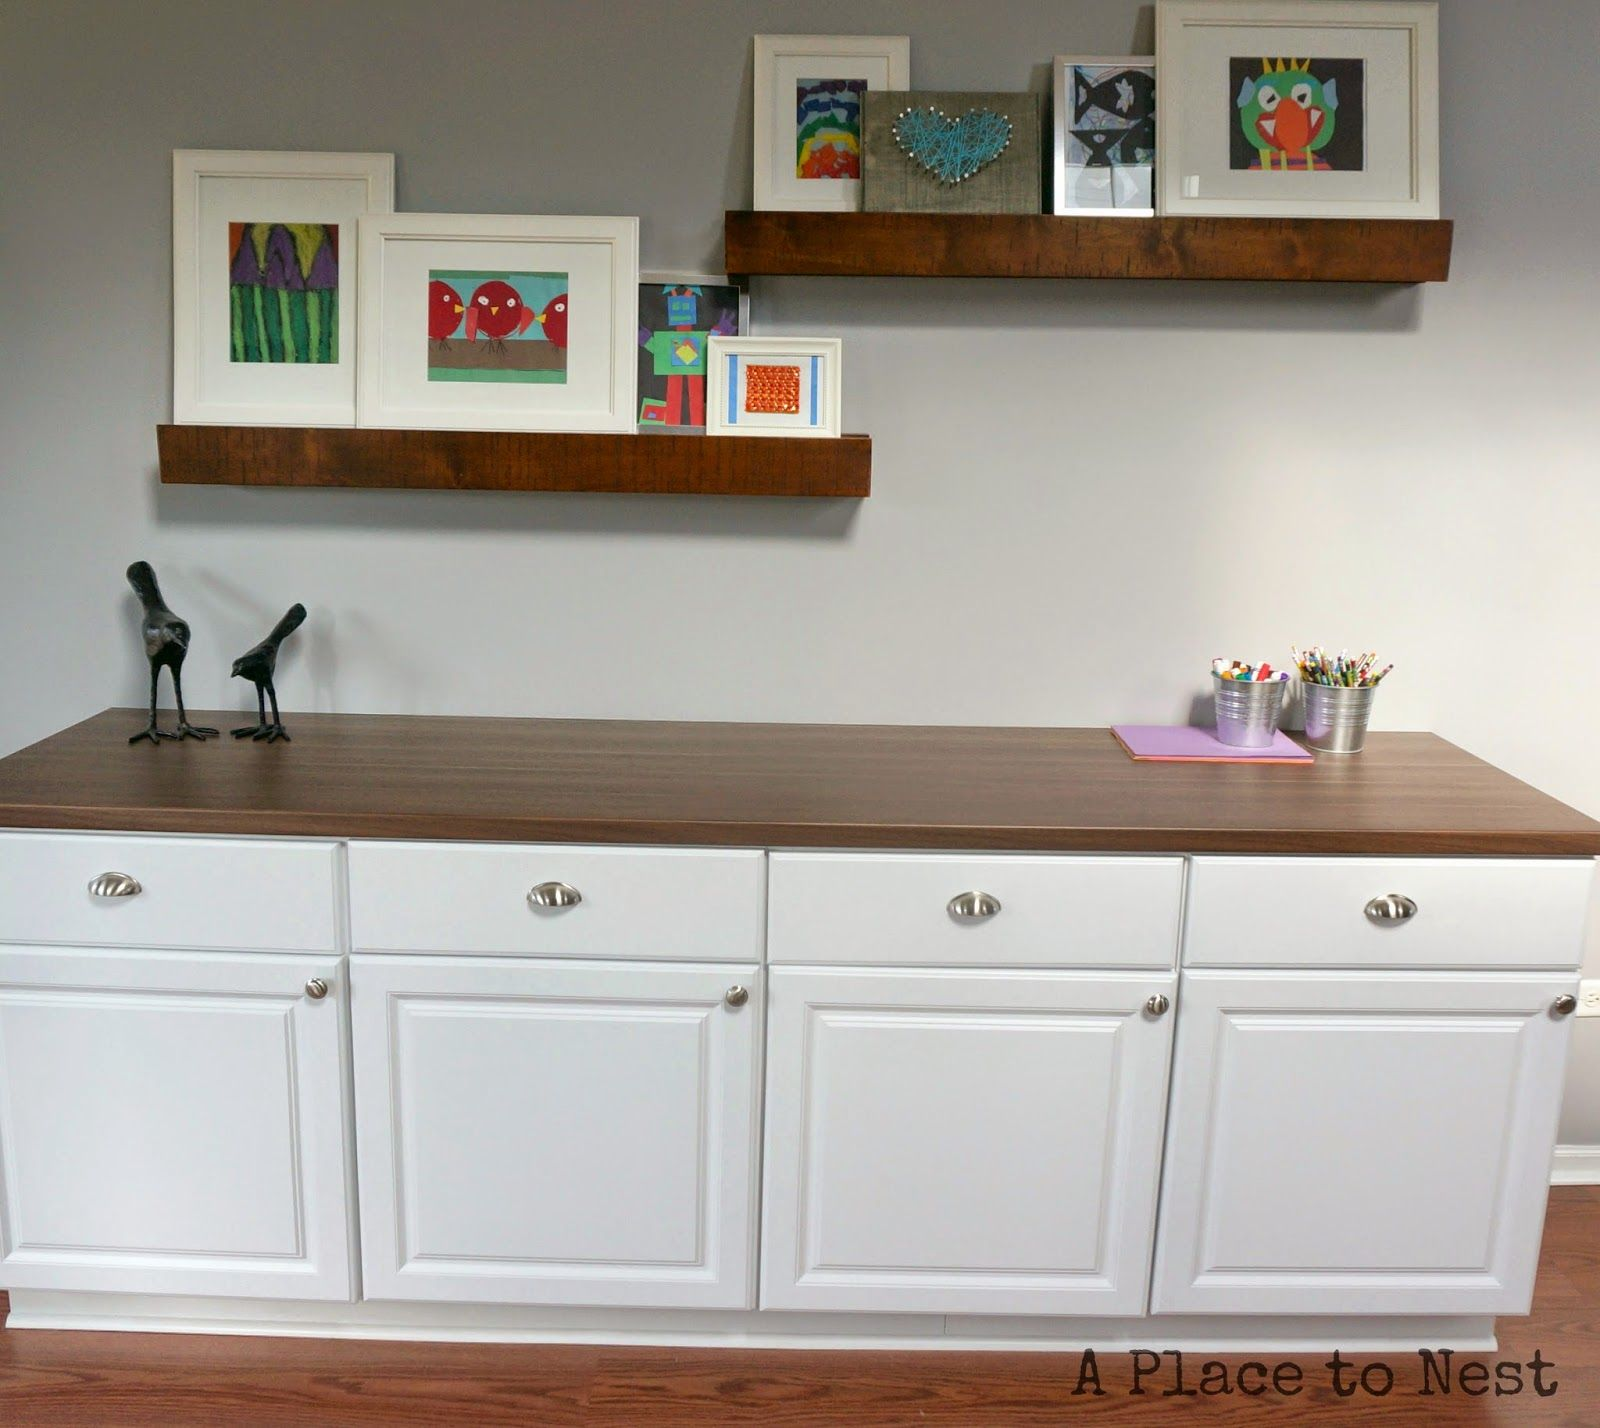 Full size ikea counter top and Home Depot base cabinets makes \